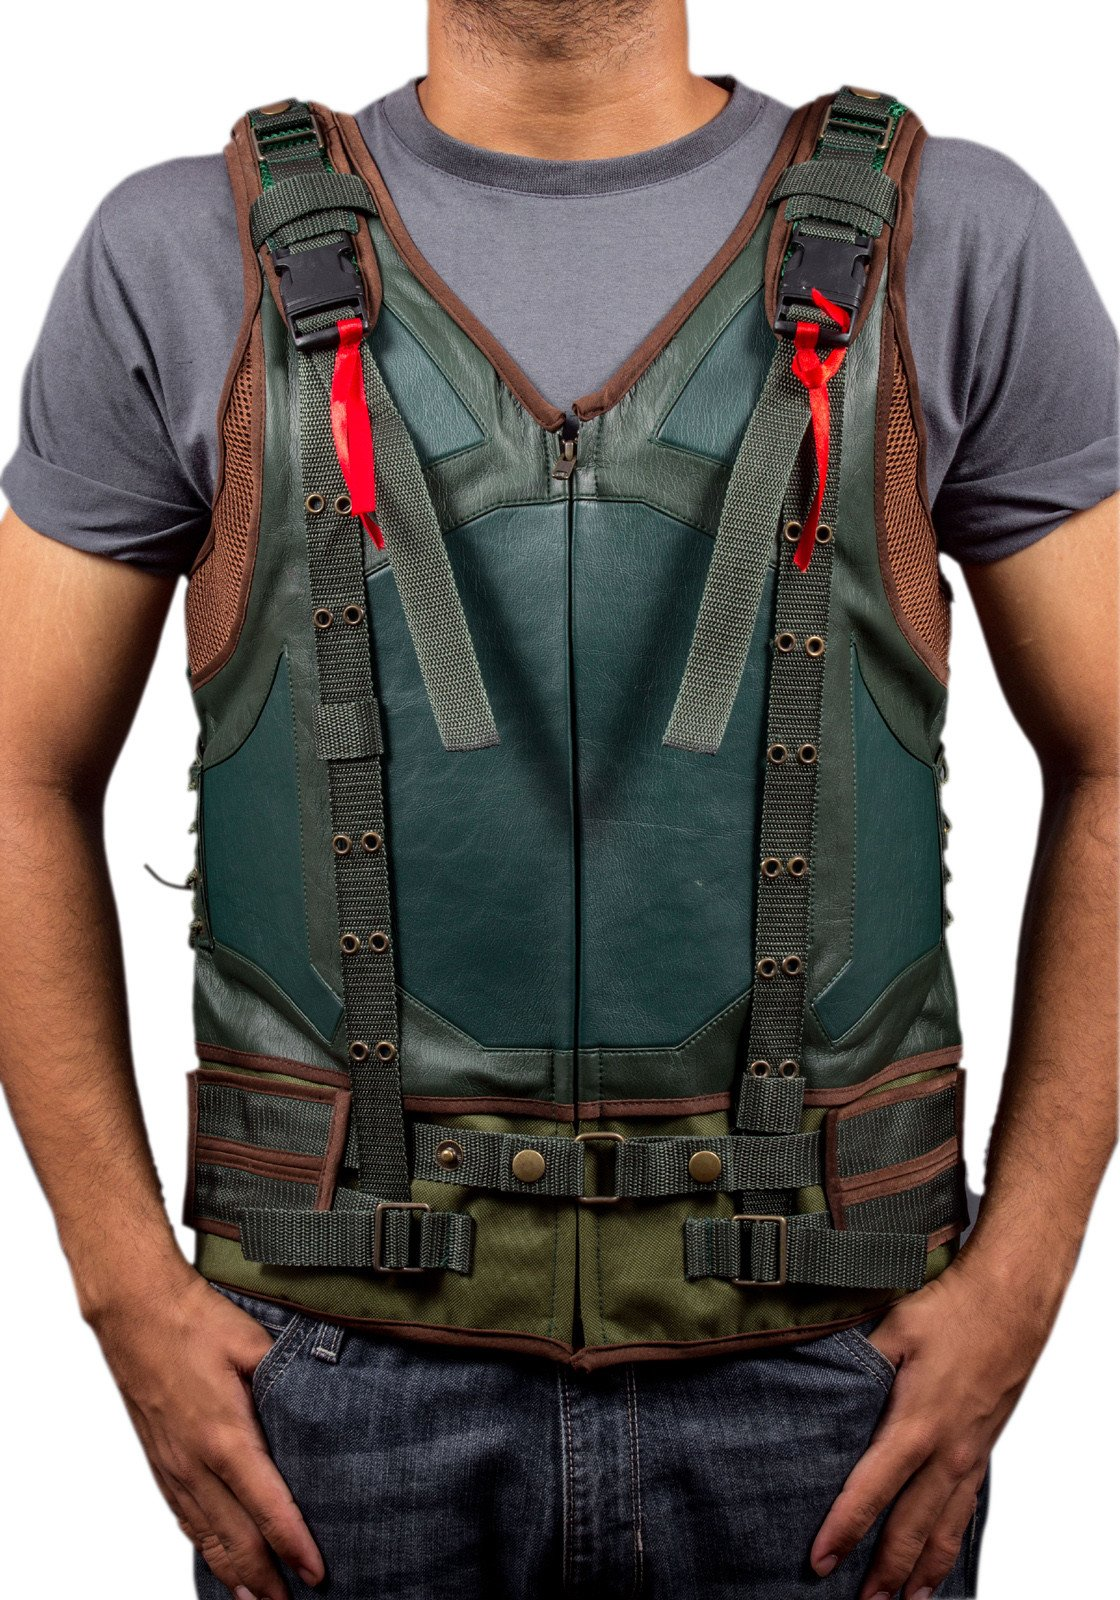 F&H Boy's Bane The DarkKnight Rises Synthetic Leather Vest M Green by Flesh & Hide